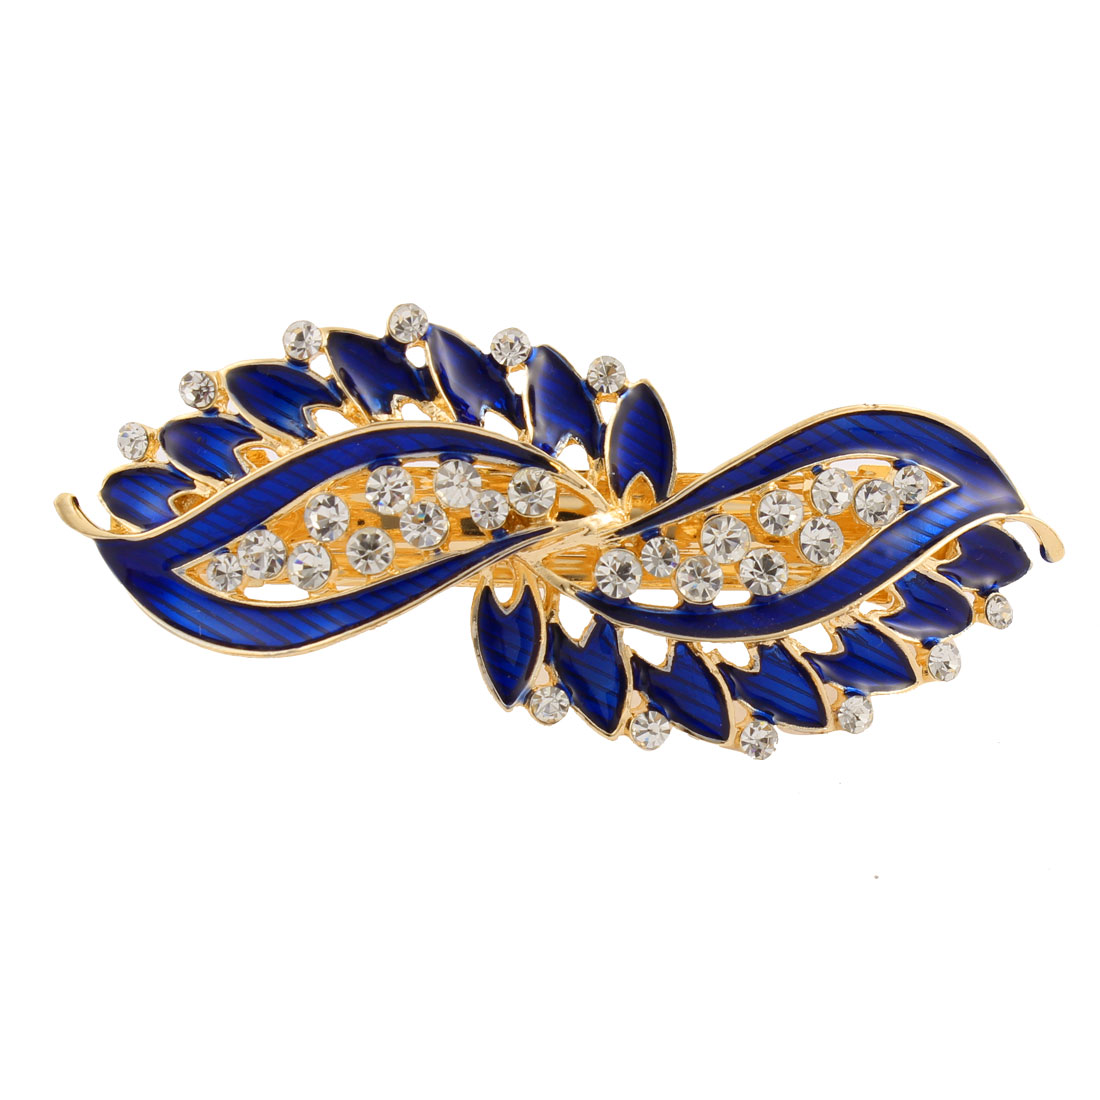 Lady Rhinestone Inlaid Leaf Style Spring Loaded Hair Barrette Clip Blue